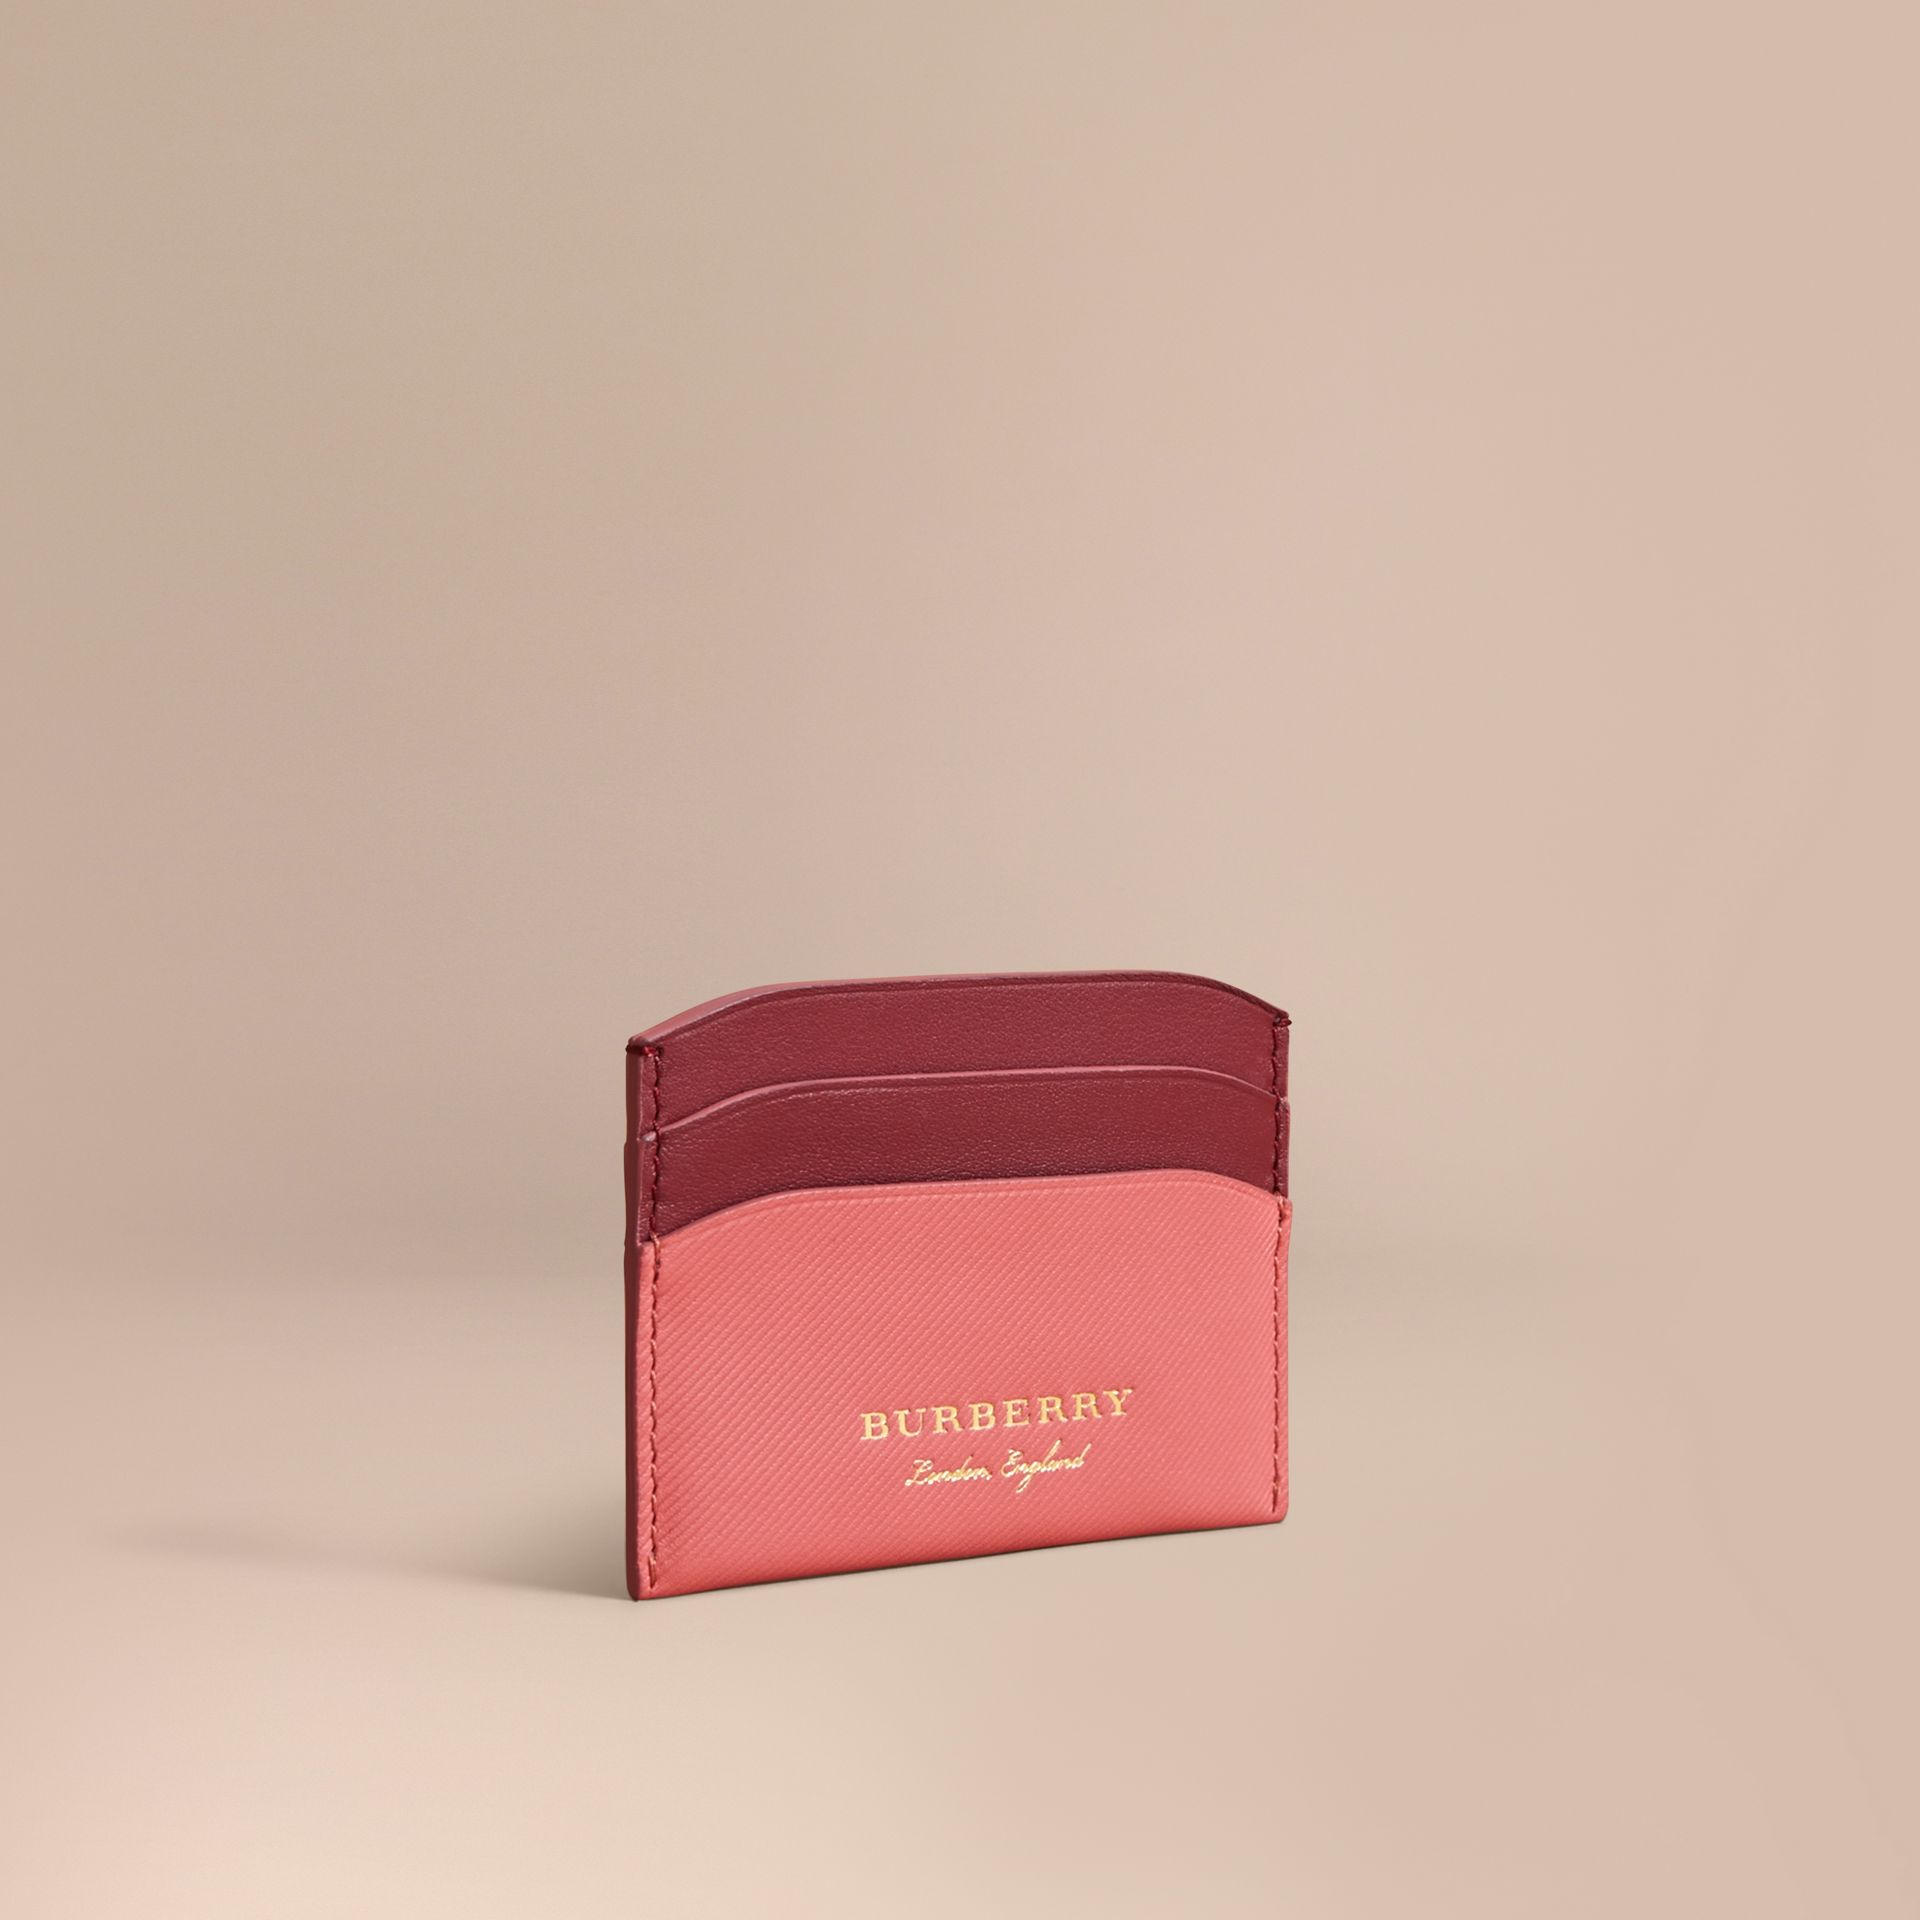 Two-tone Trench Leather Card Case in Blossom Pink/ Antique Red - Women | Burberry - gallery image 1